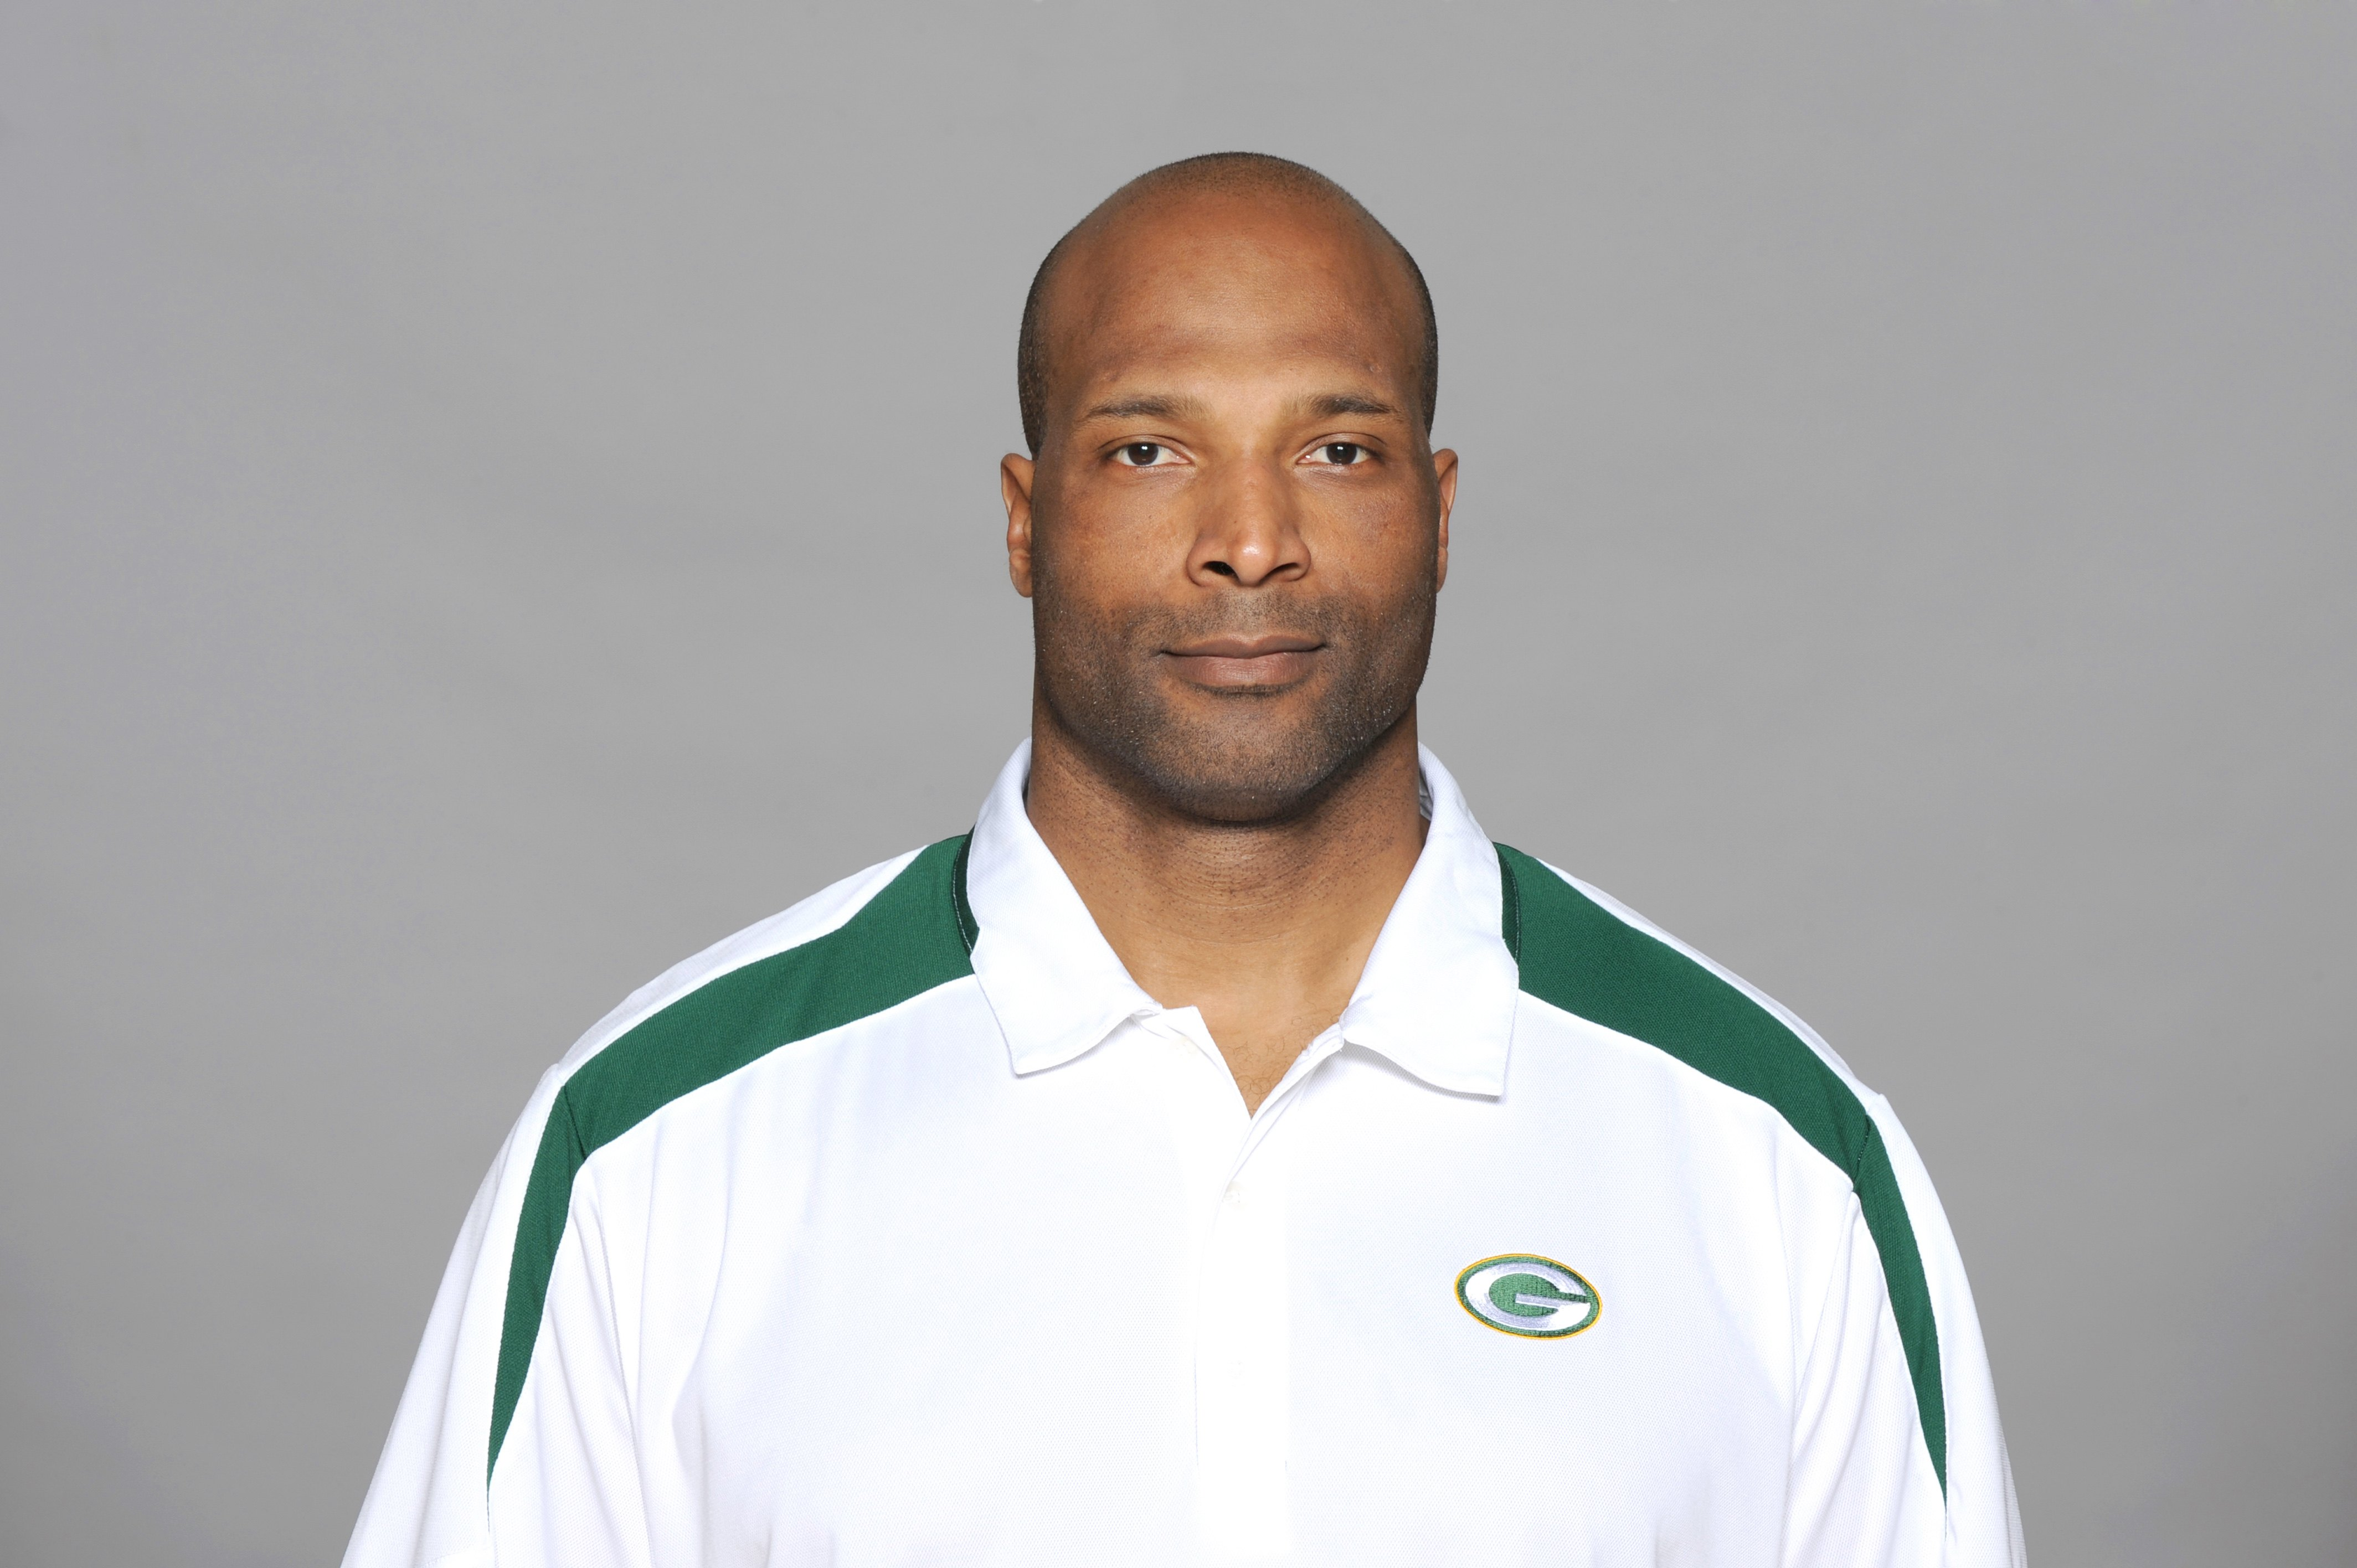 GREEN BAY, WI - 2009:  Winston Moss of the Green Bay Packers poses for his 2009 NFL headshot at photo day in Green Bay, Wisconsin.  (Photo by NFL Photos)